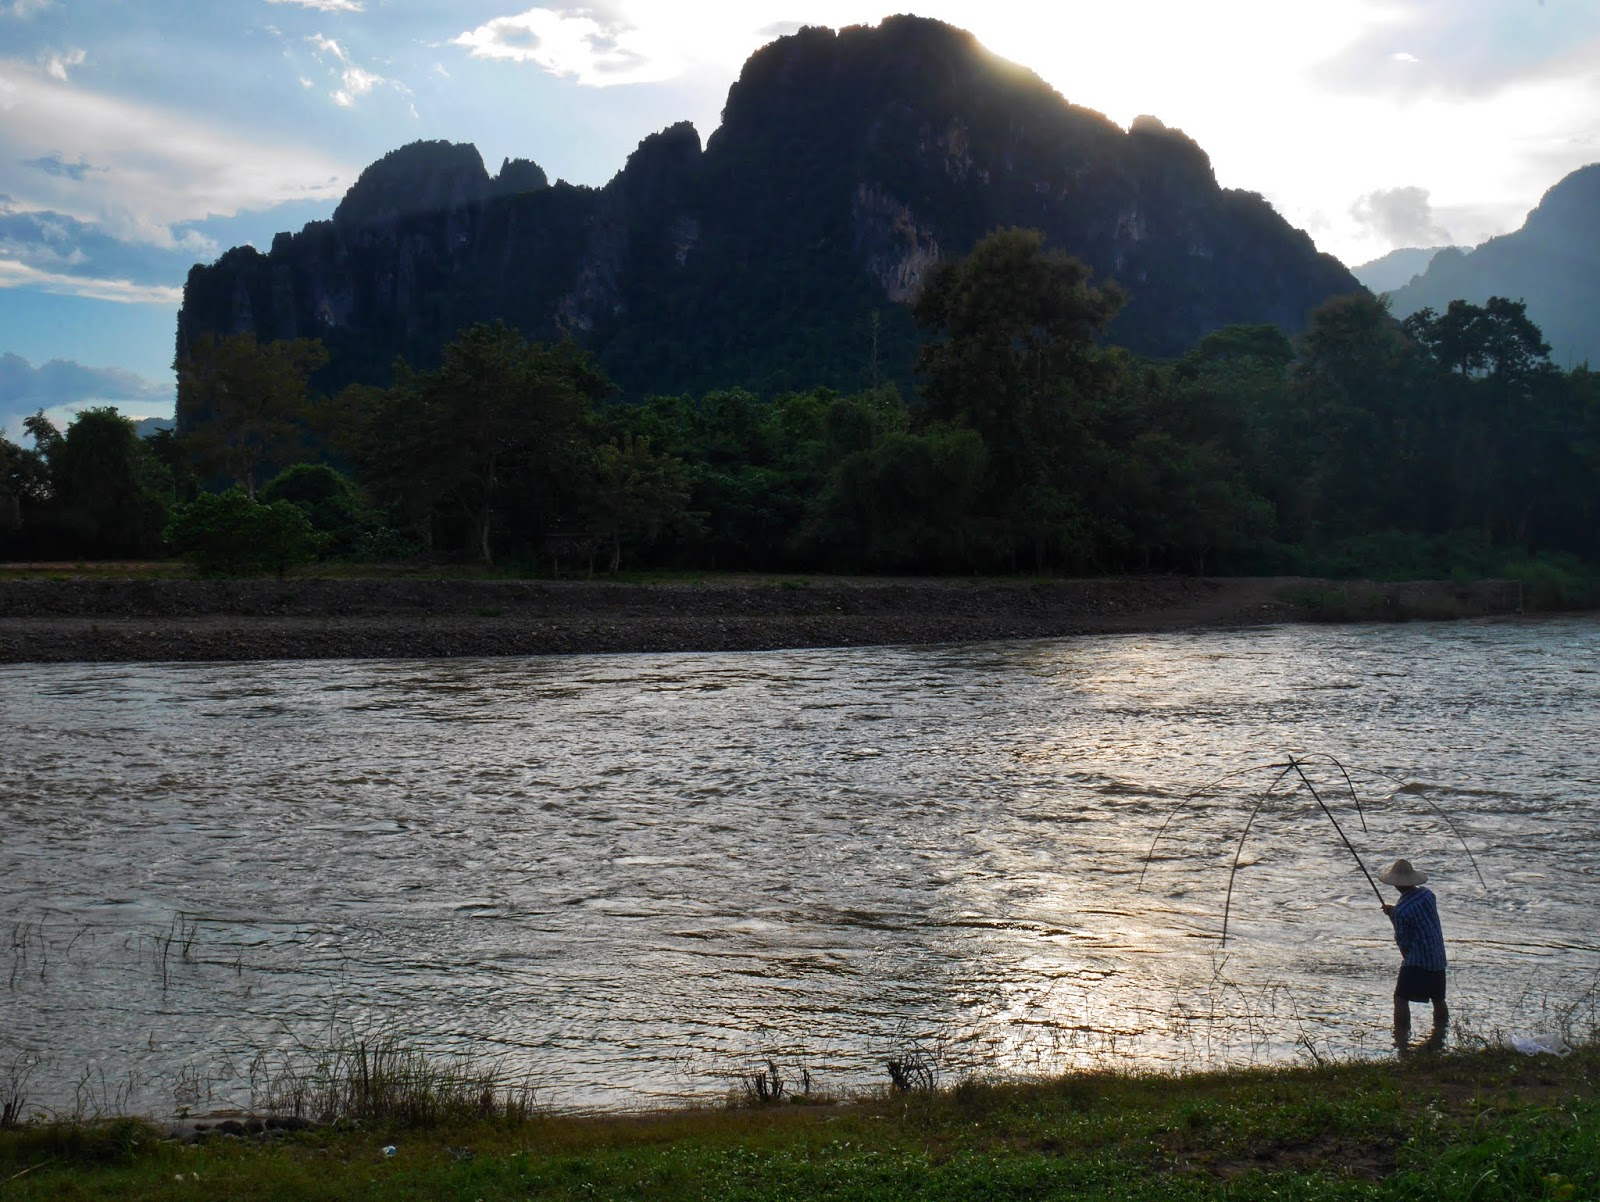 a local fisherman catching fish with a net as the sun sets over the river with the mountains in the background, vang vieng, laos